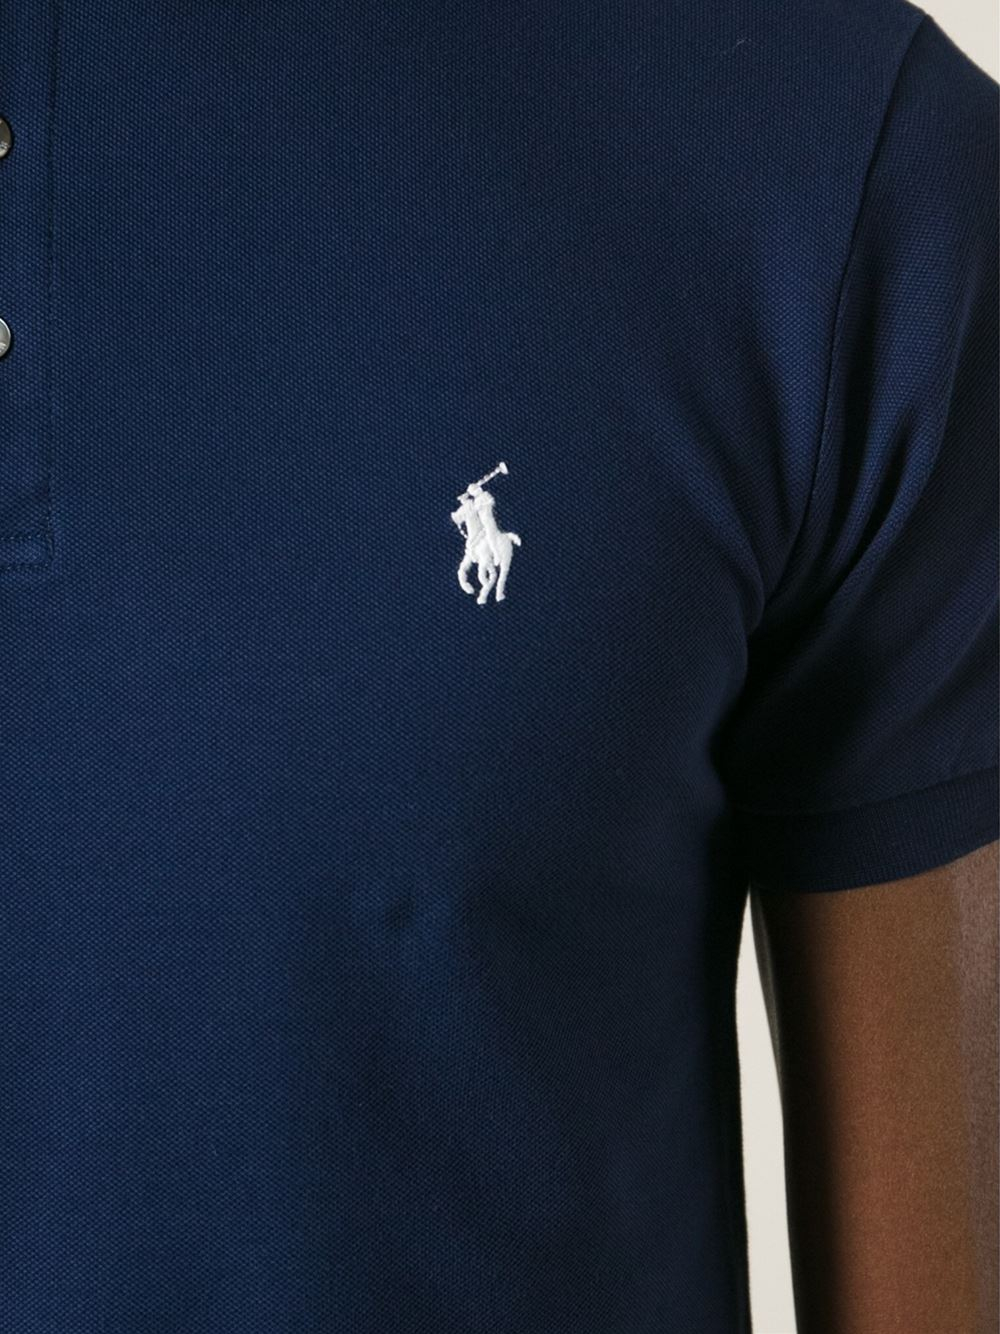 Lyst polo ralph lauren embroidered logo polo shirt in for My logo on a shirt